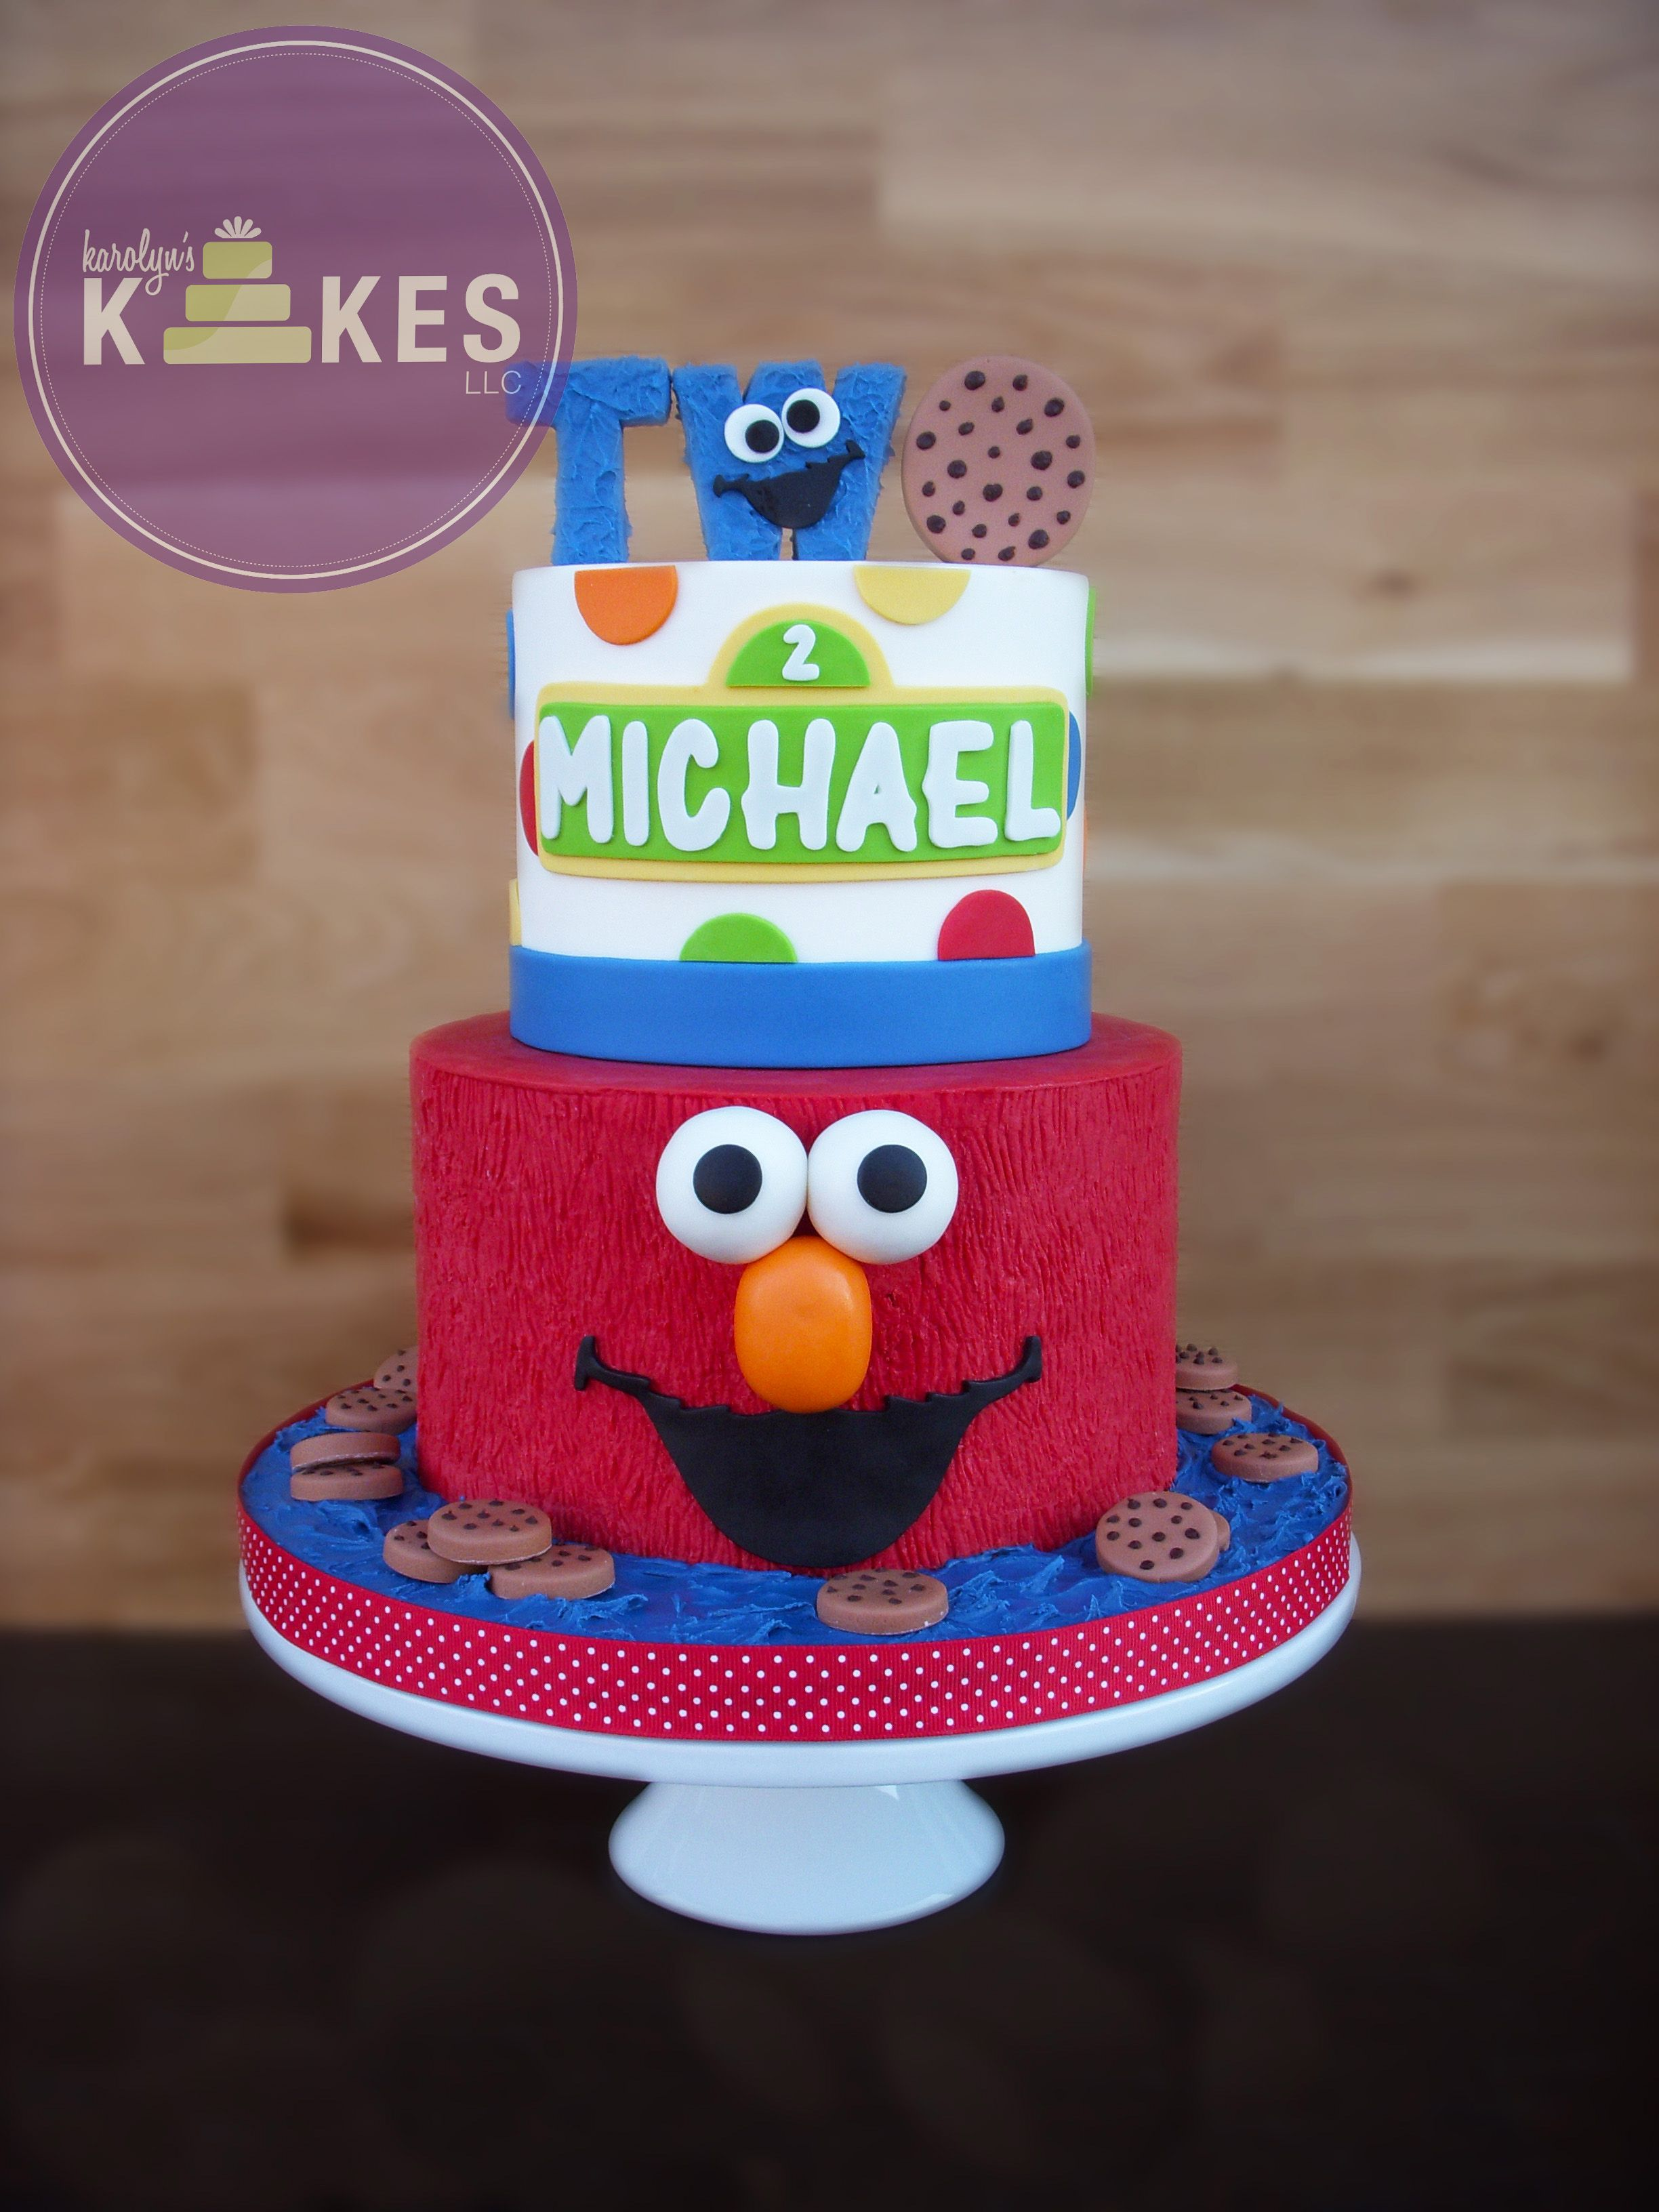 Elmo And Cookie Monster Kake Both Cakes Are Iced In